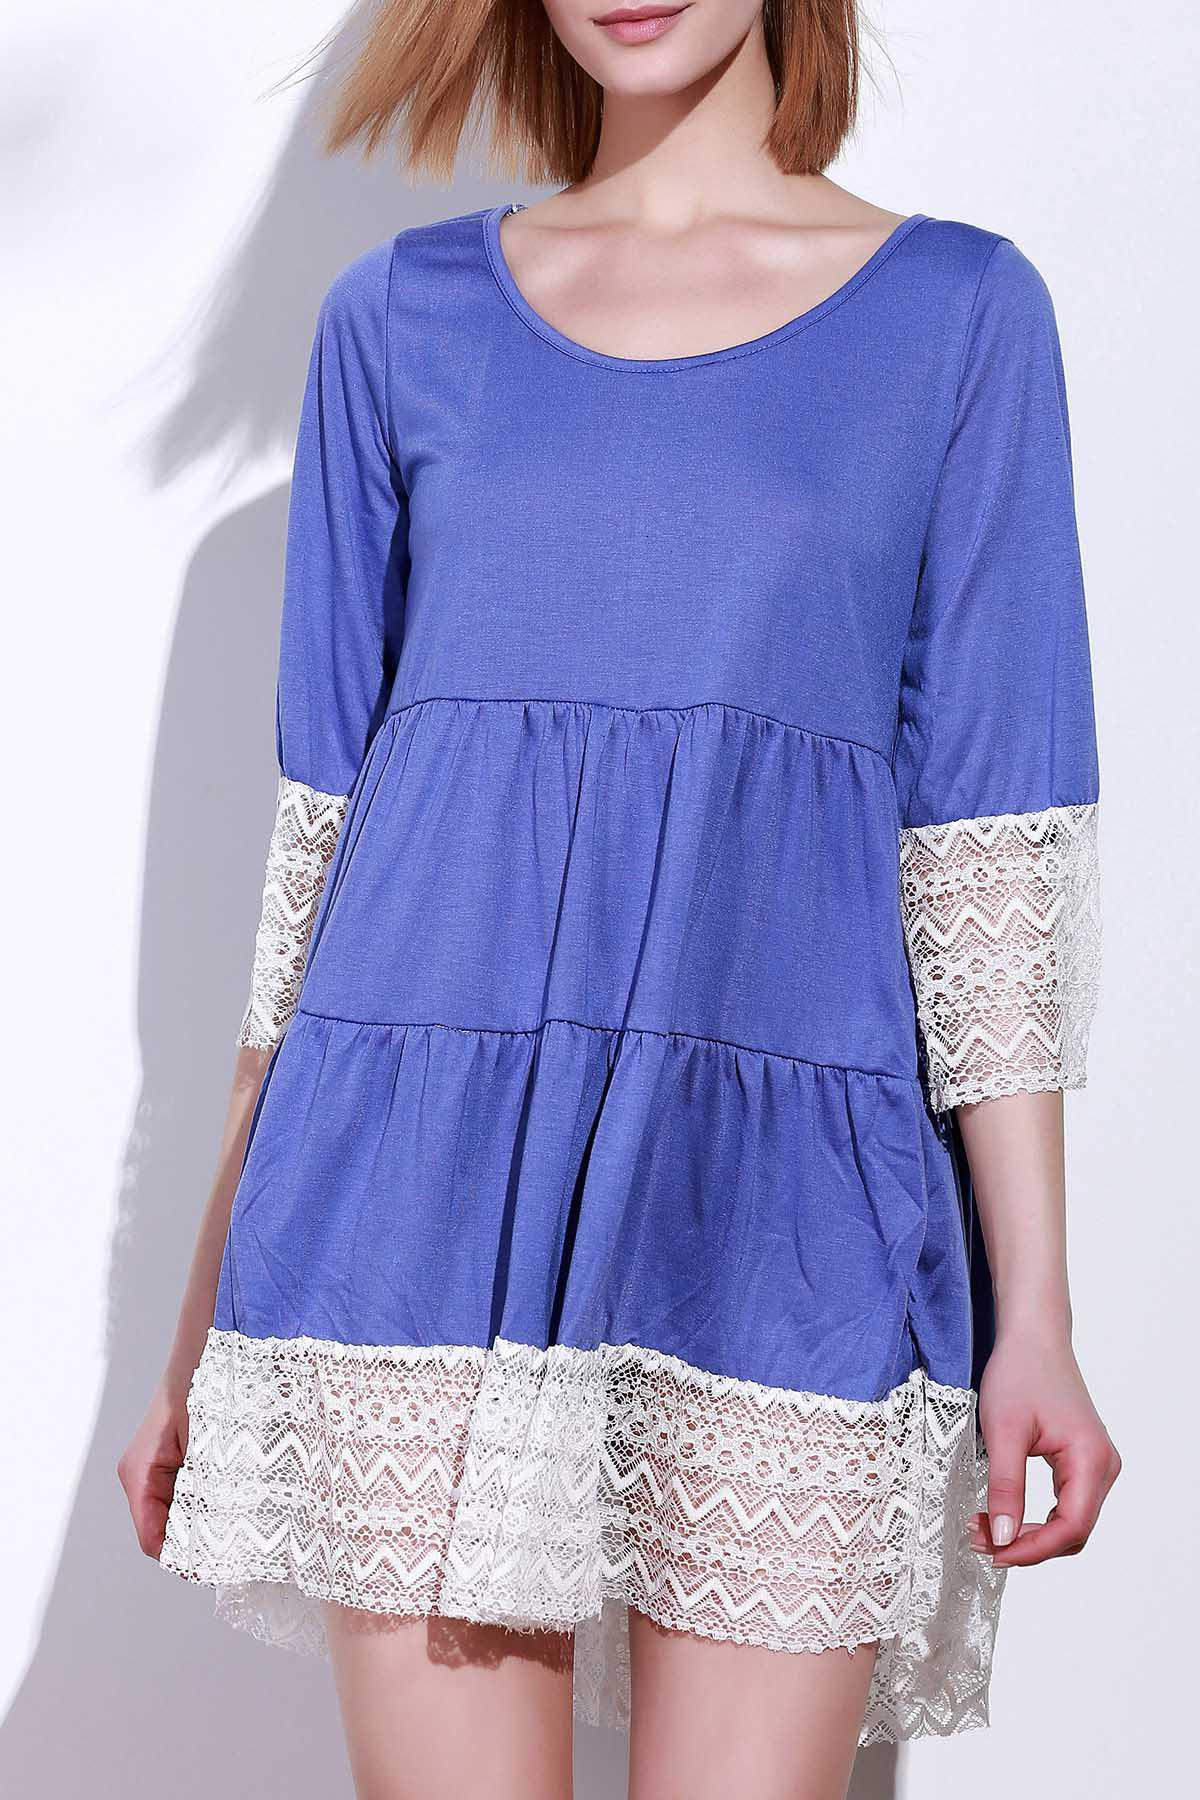 Casual 3/4 Sleeve U-Neck Loose-Fitting Lace Splicing Women's Dress фото